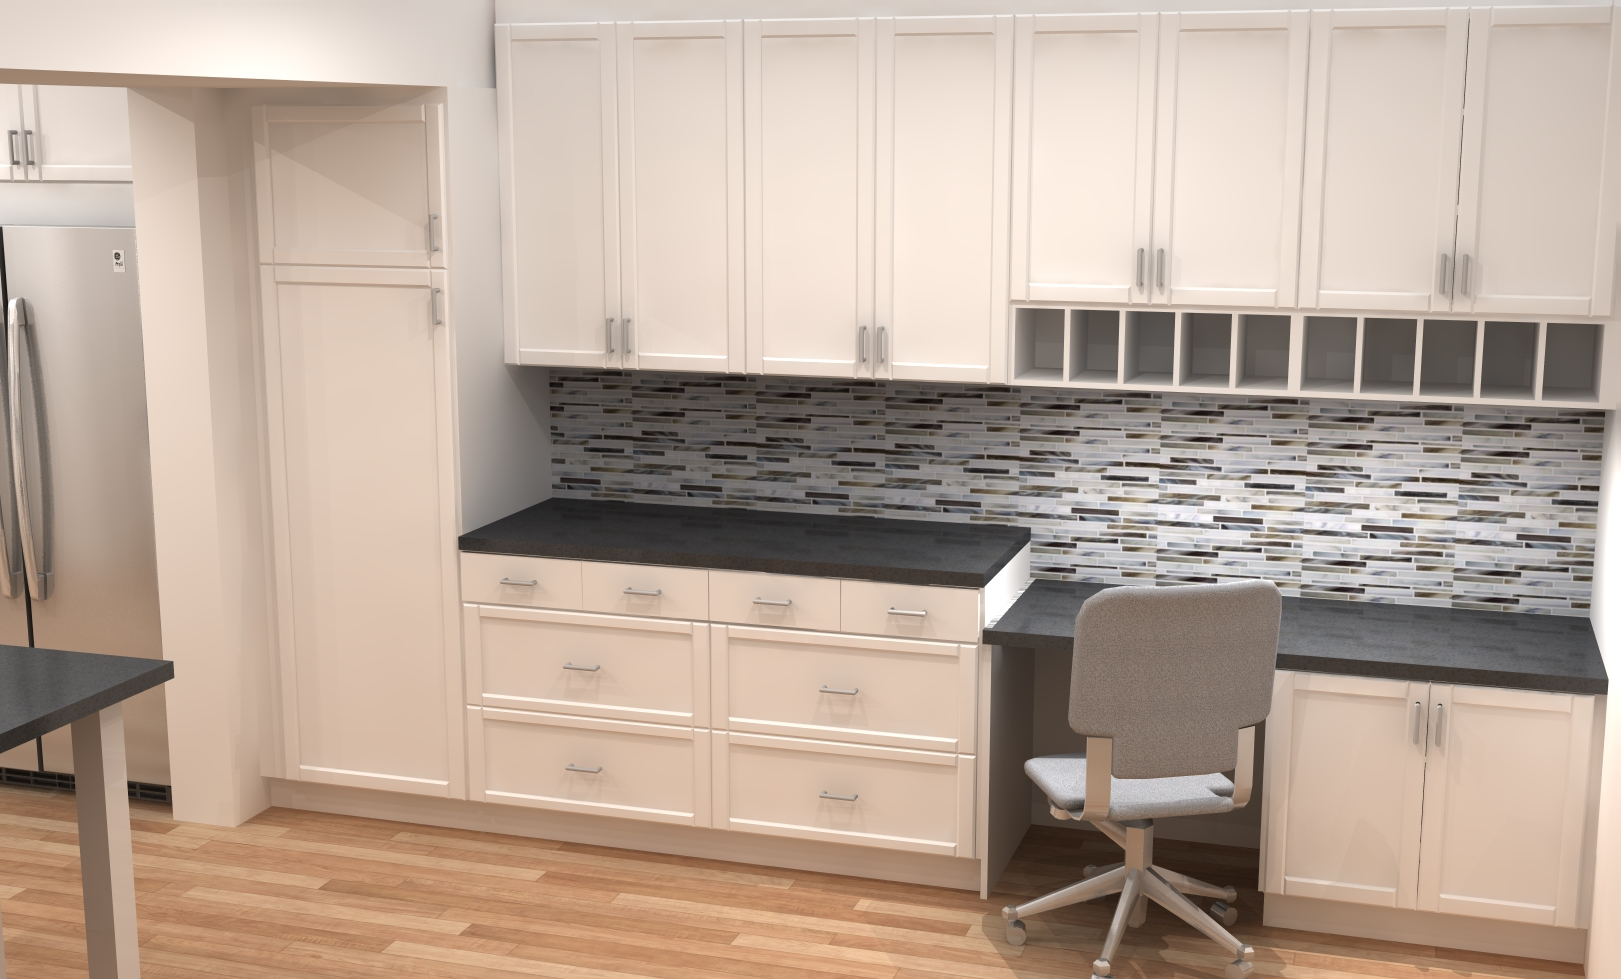 small kitchen remodel with ikea cabinets ikea kitchen remodel Desk area in white modern ADEL shaker IKEA kitchen